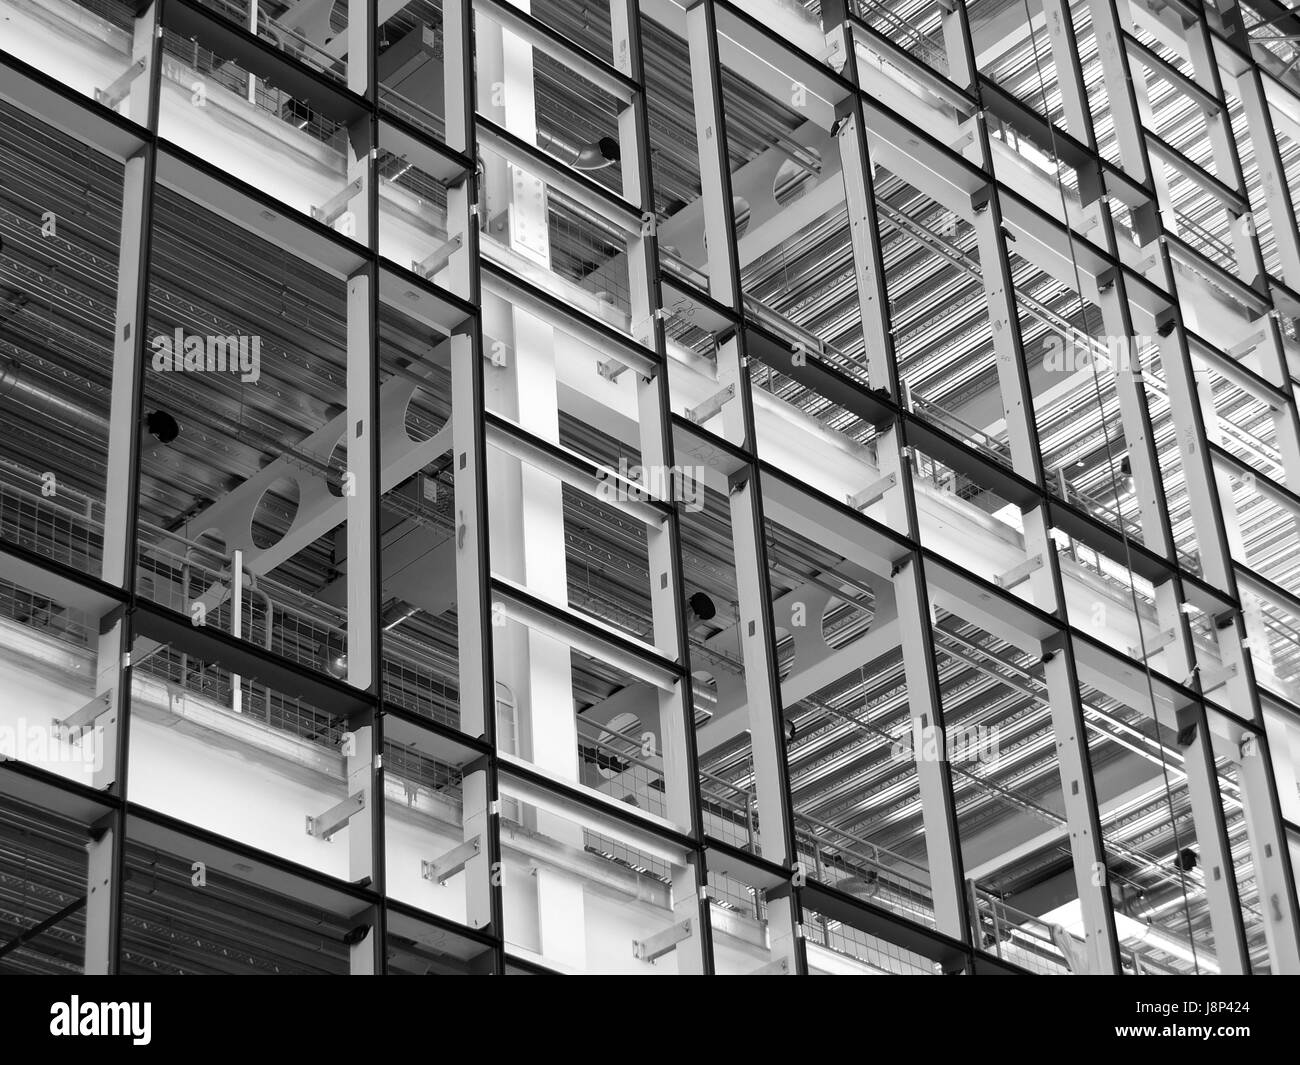 construction work with modern steel framed building and girders - Stock Image